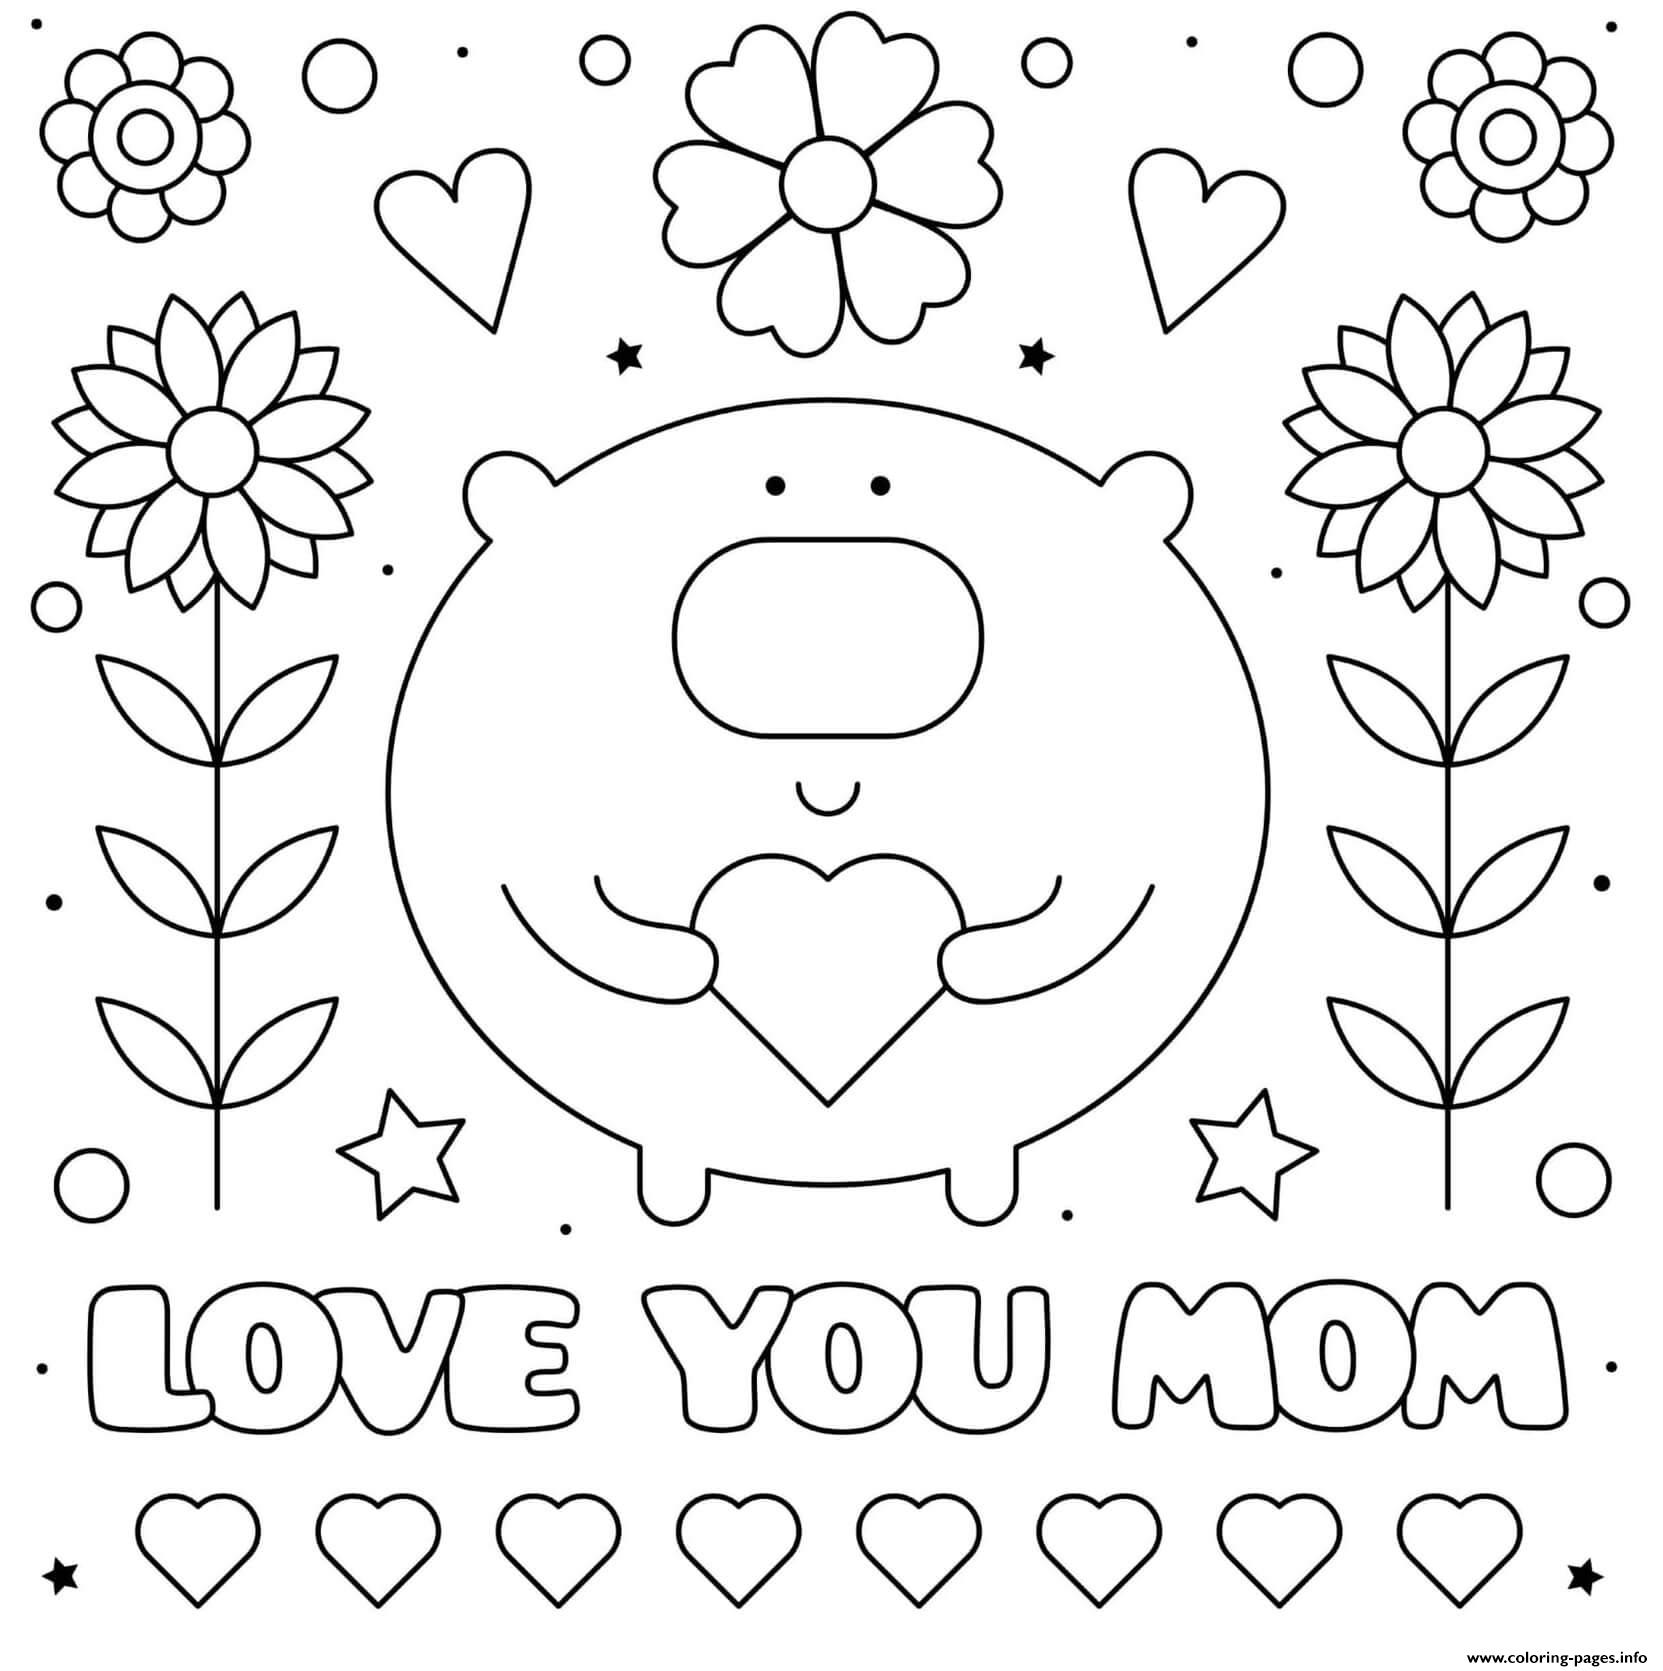 FREE Printable Coloring Pages for Mom | Mothers day coloring pages ... | 1671x1663